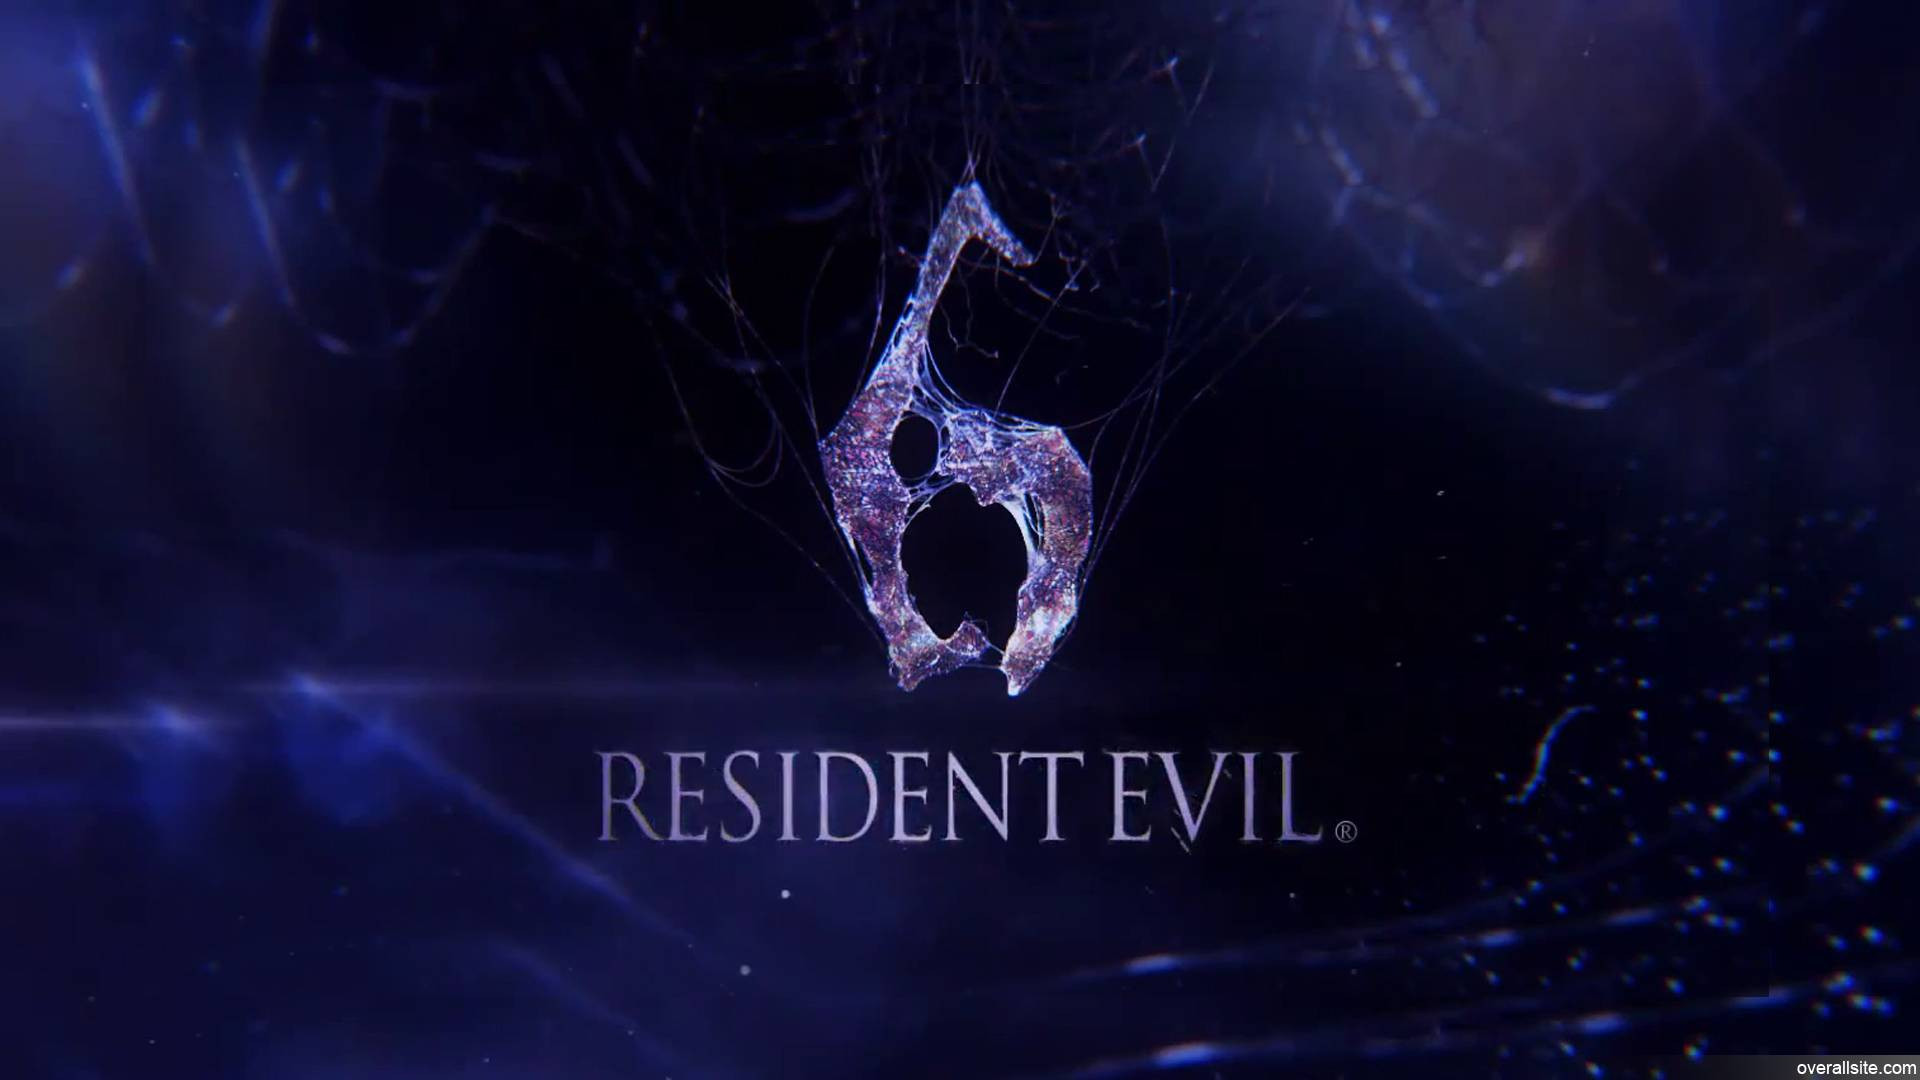 Wallpapers De Resident Evil 6 7 Wallpapers En Hd